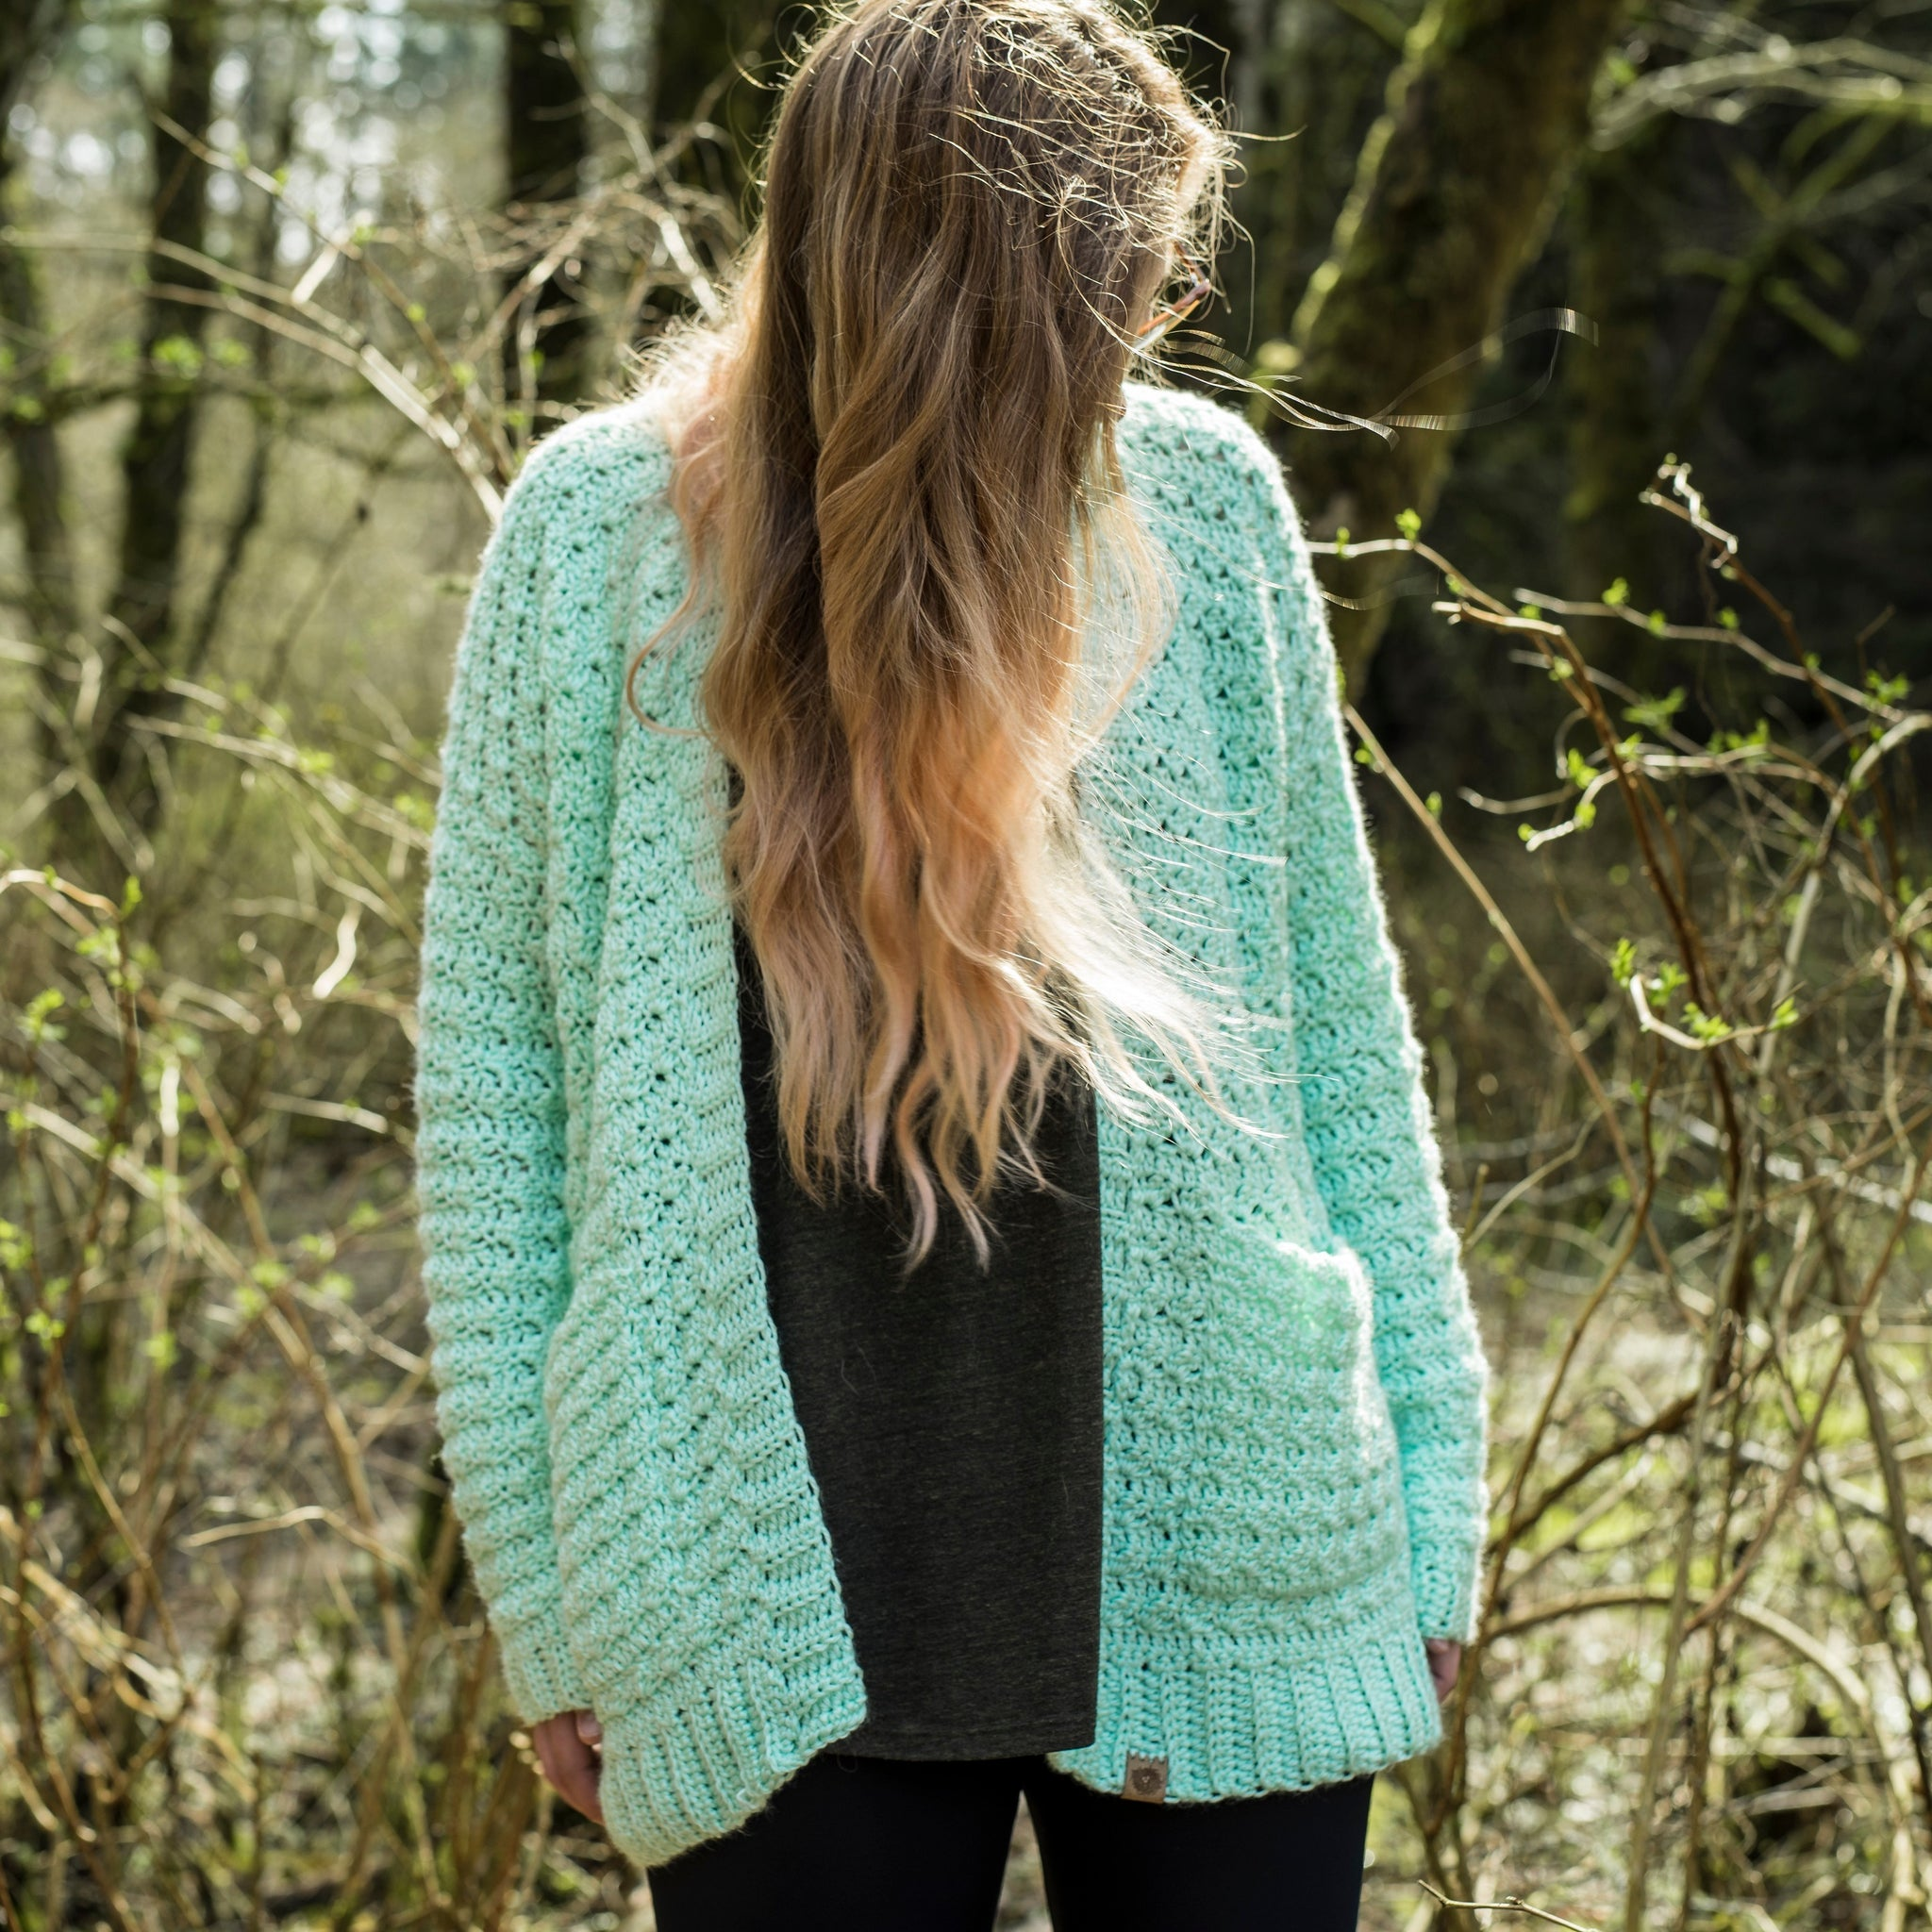 Crochet Pattern: The Starling Cardigan